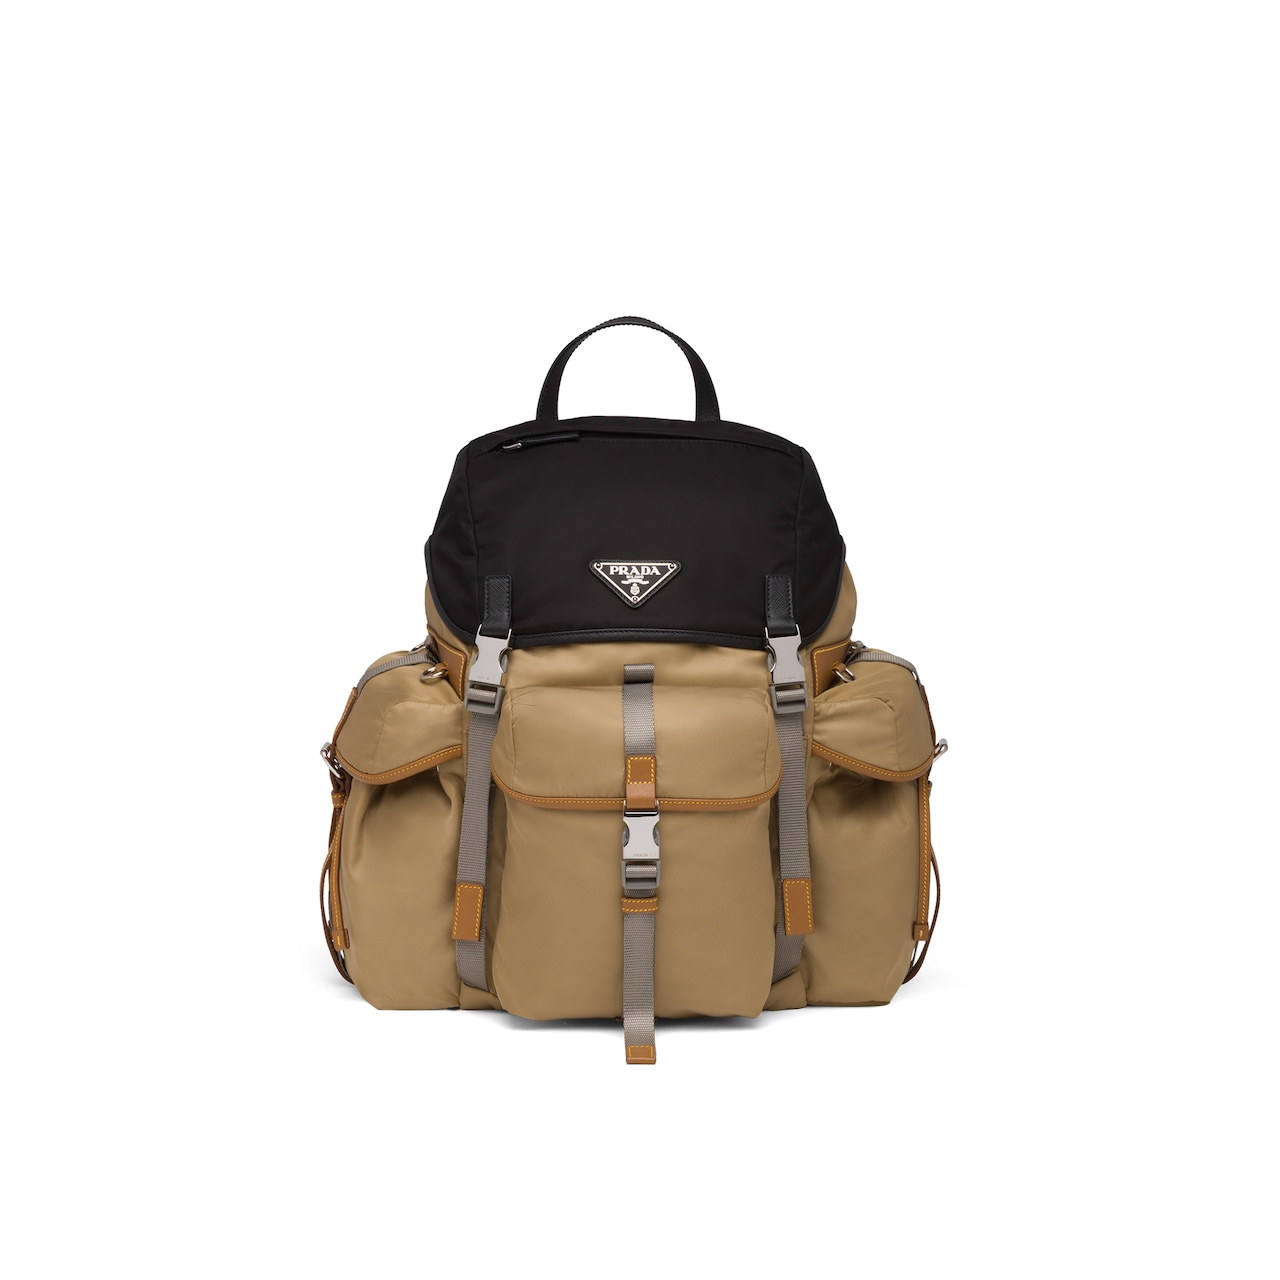 Prada Technical fabric and Saffiano leather backpack 1